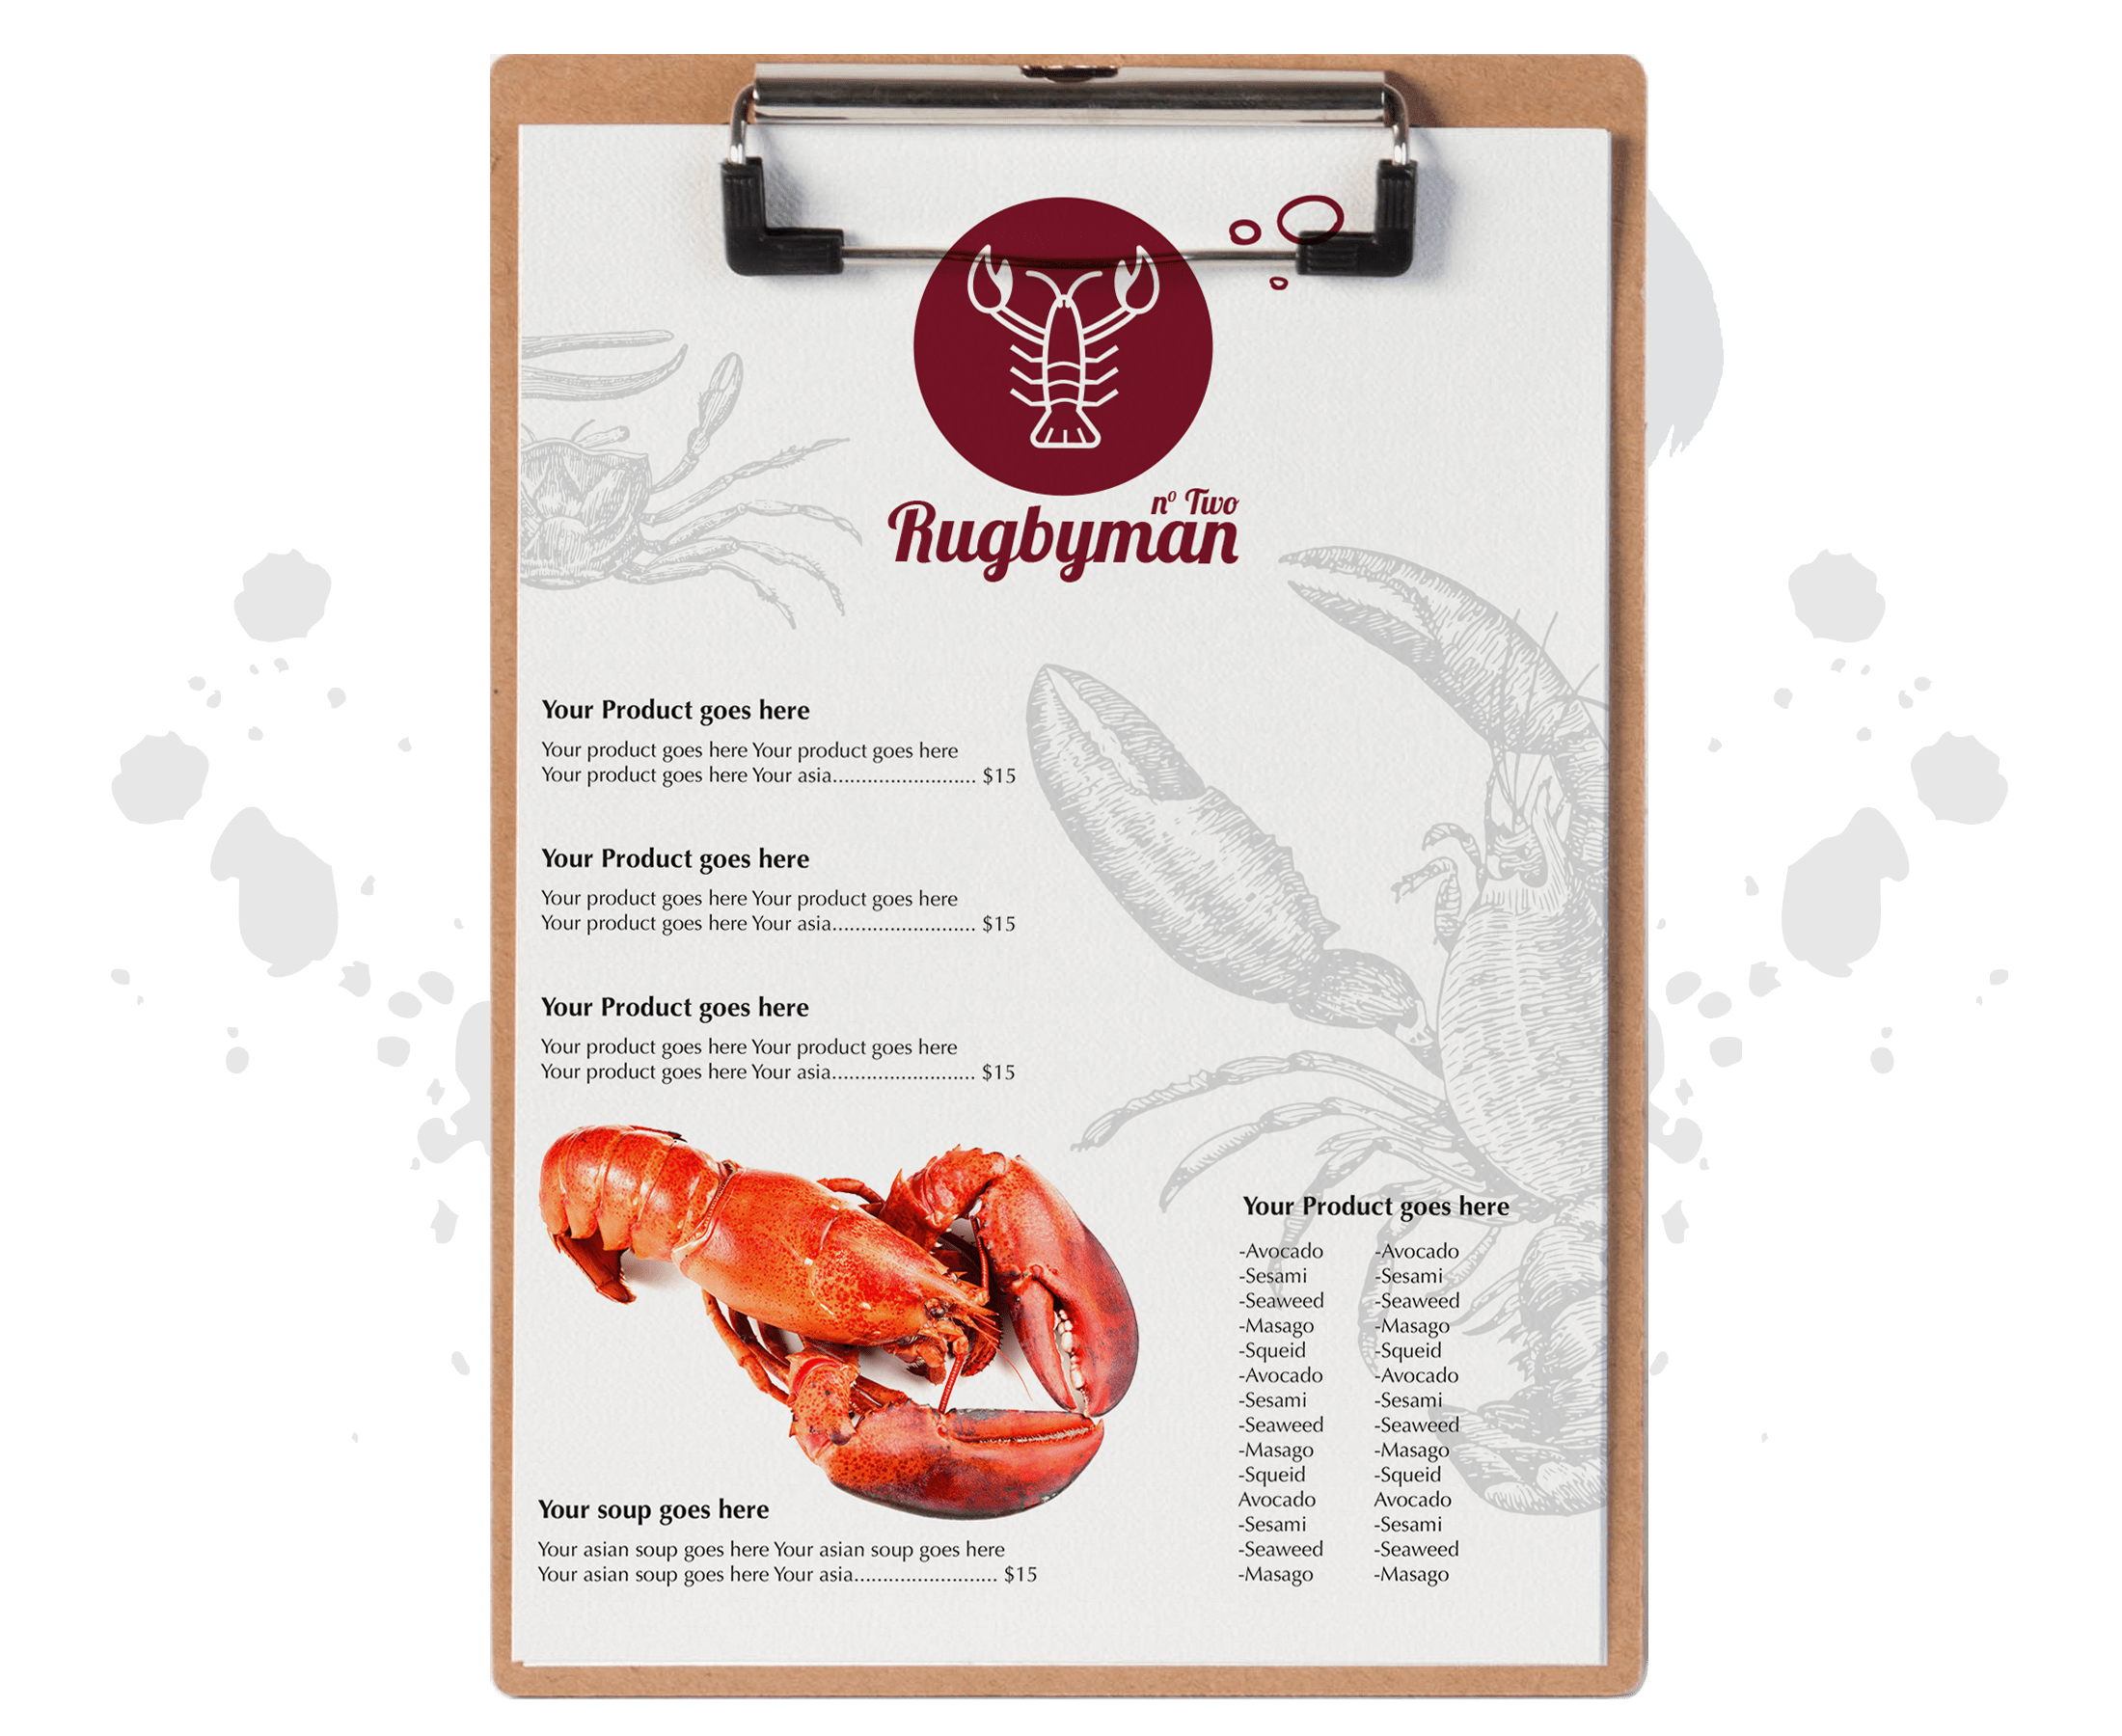 Rugbyman two-menu